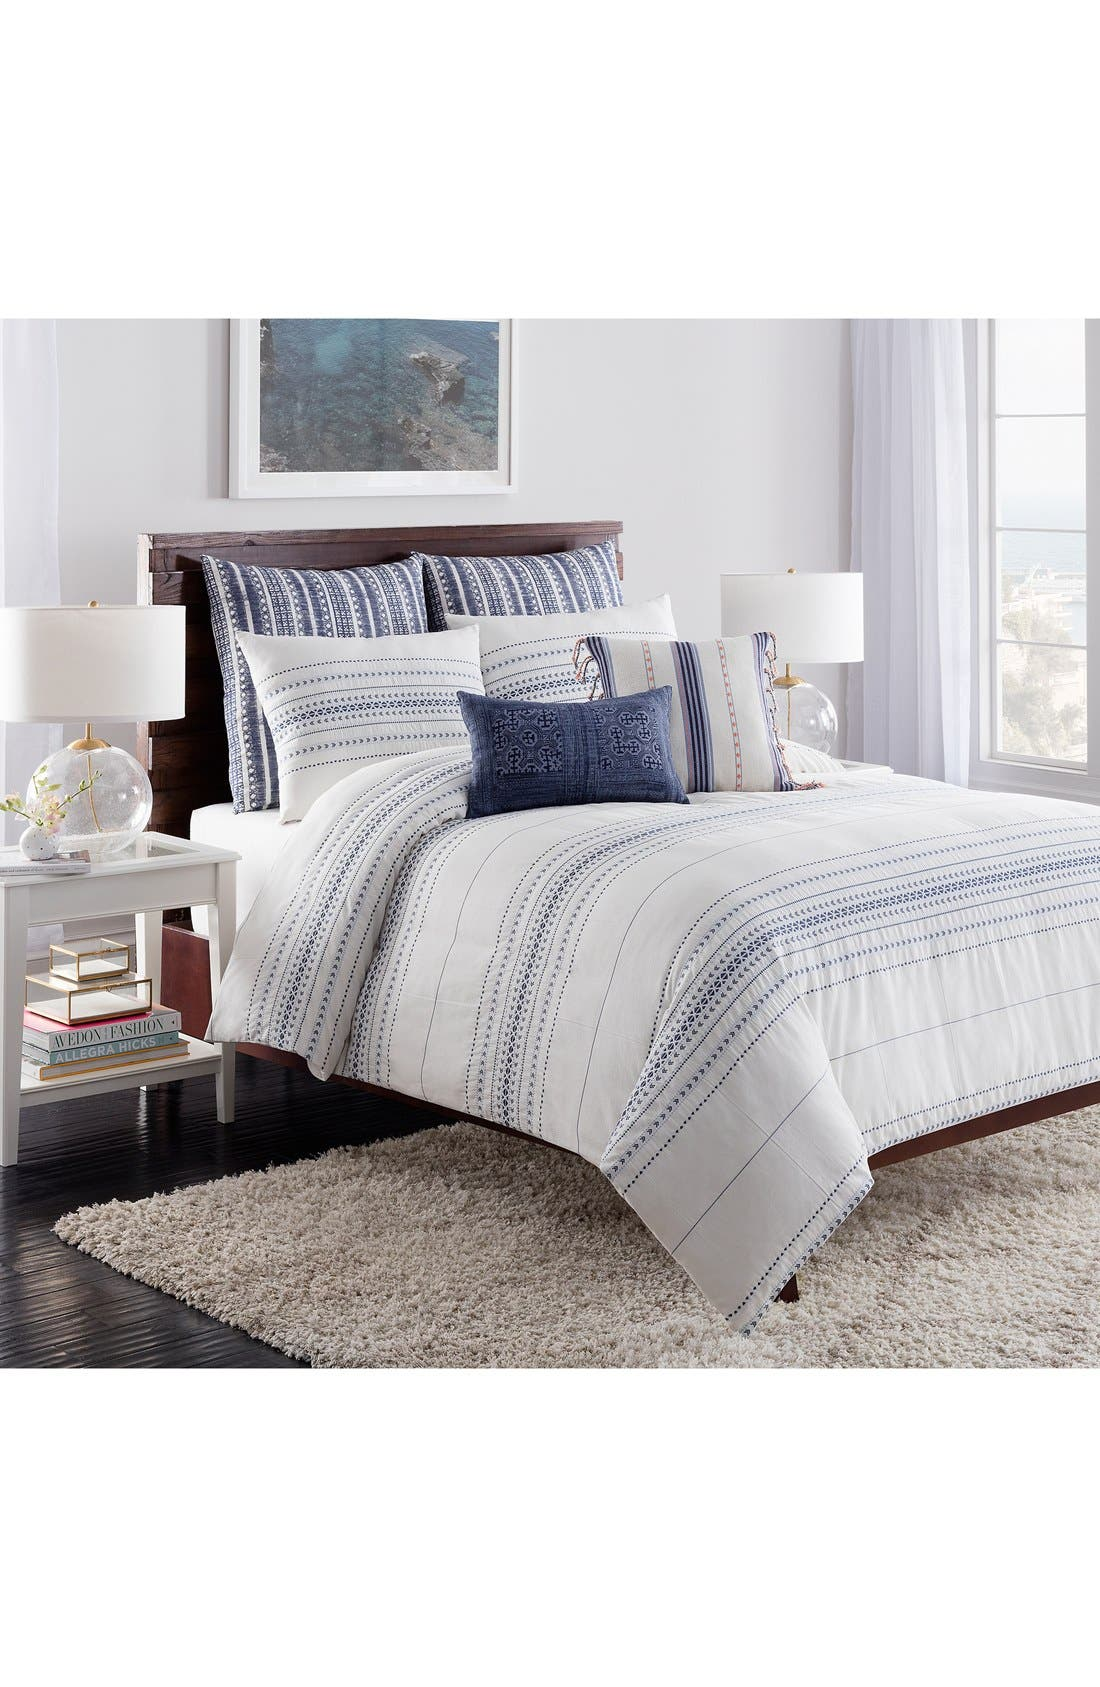 cupcakes and cashmere 'Indigo Stripe' Duvet Cover